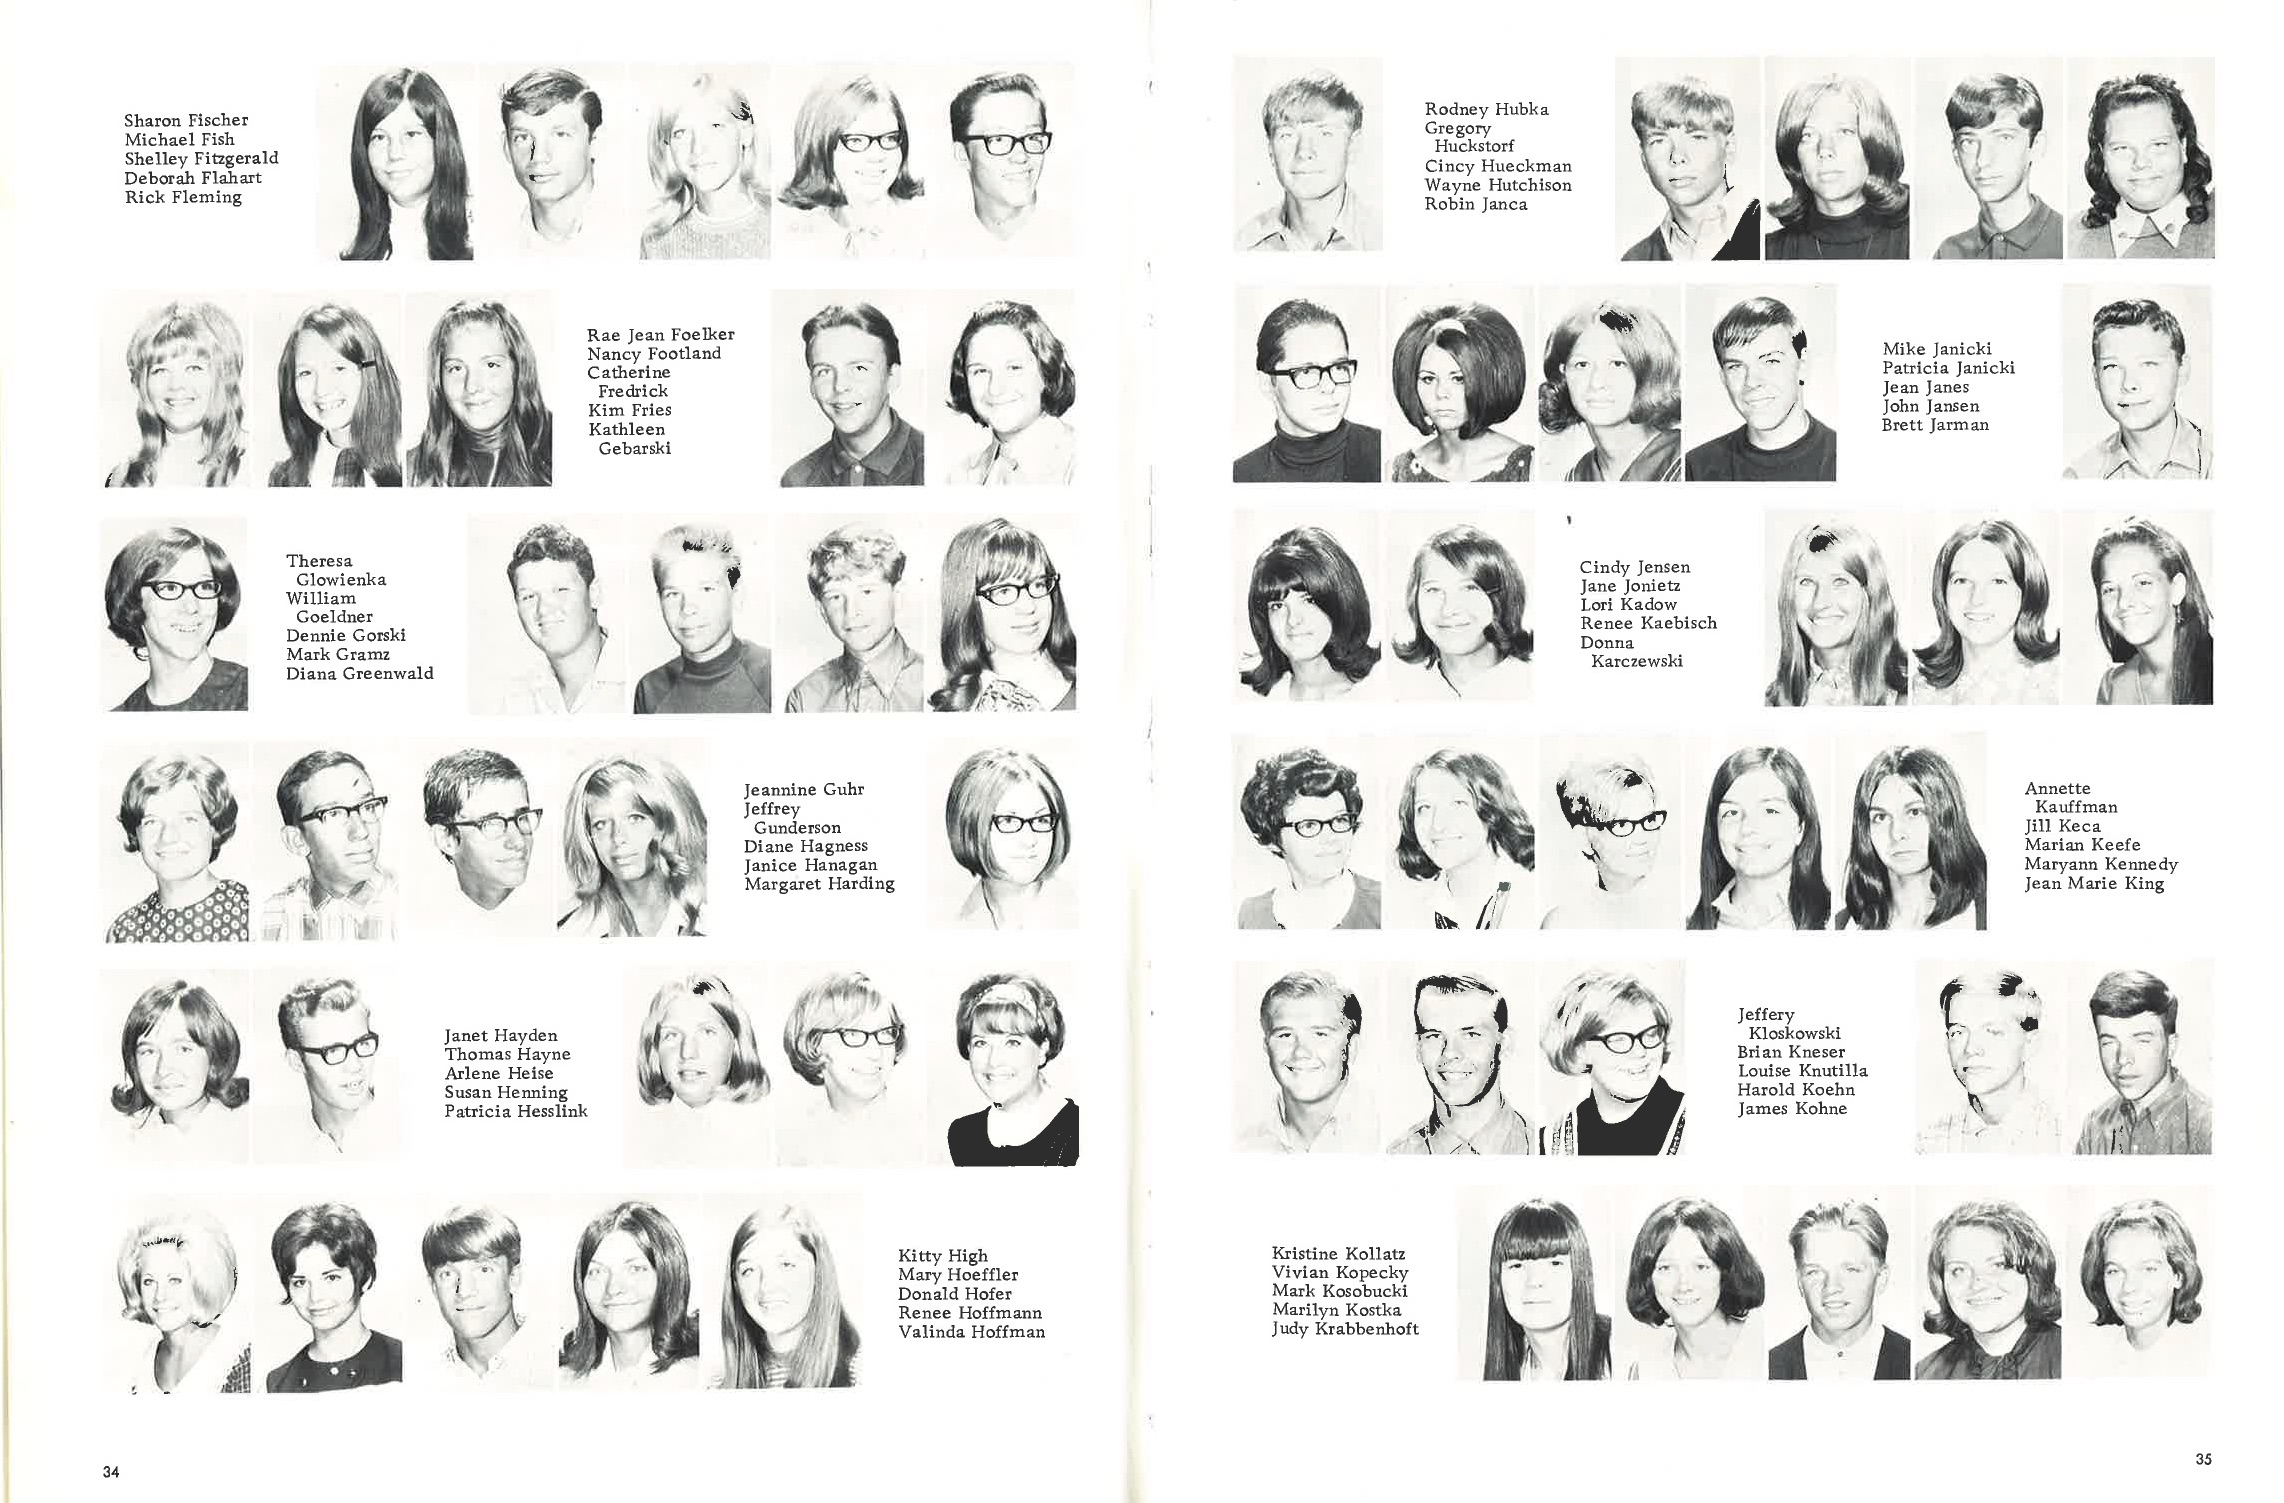 1970_Yearbook_34-35.jpg